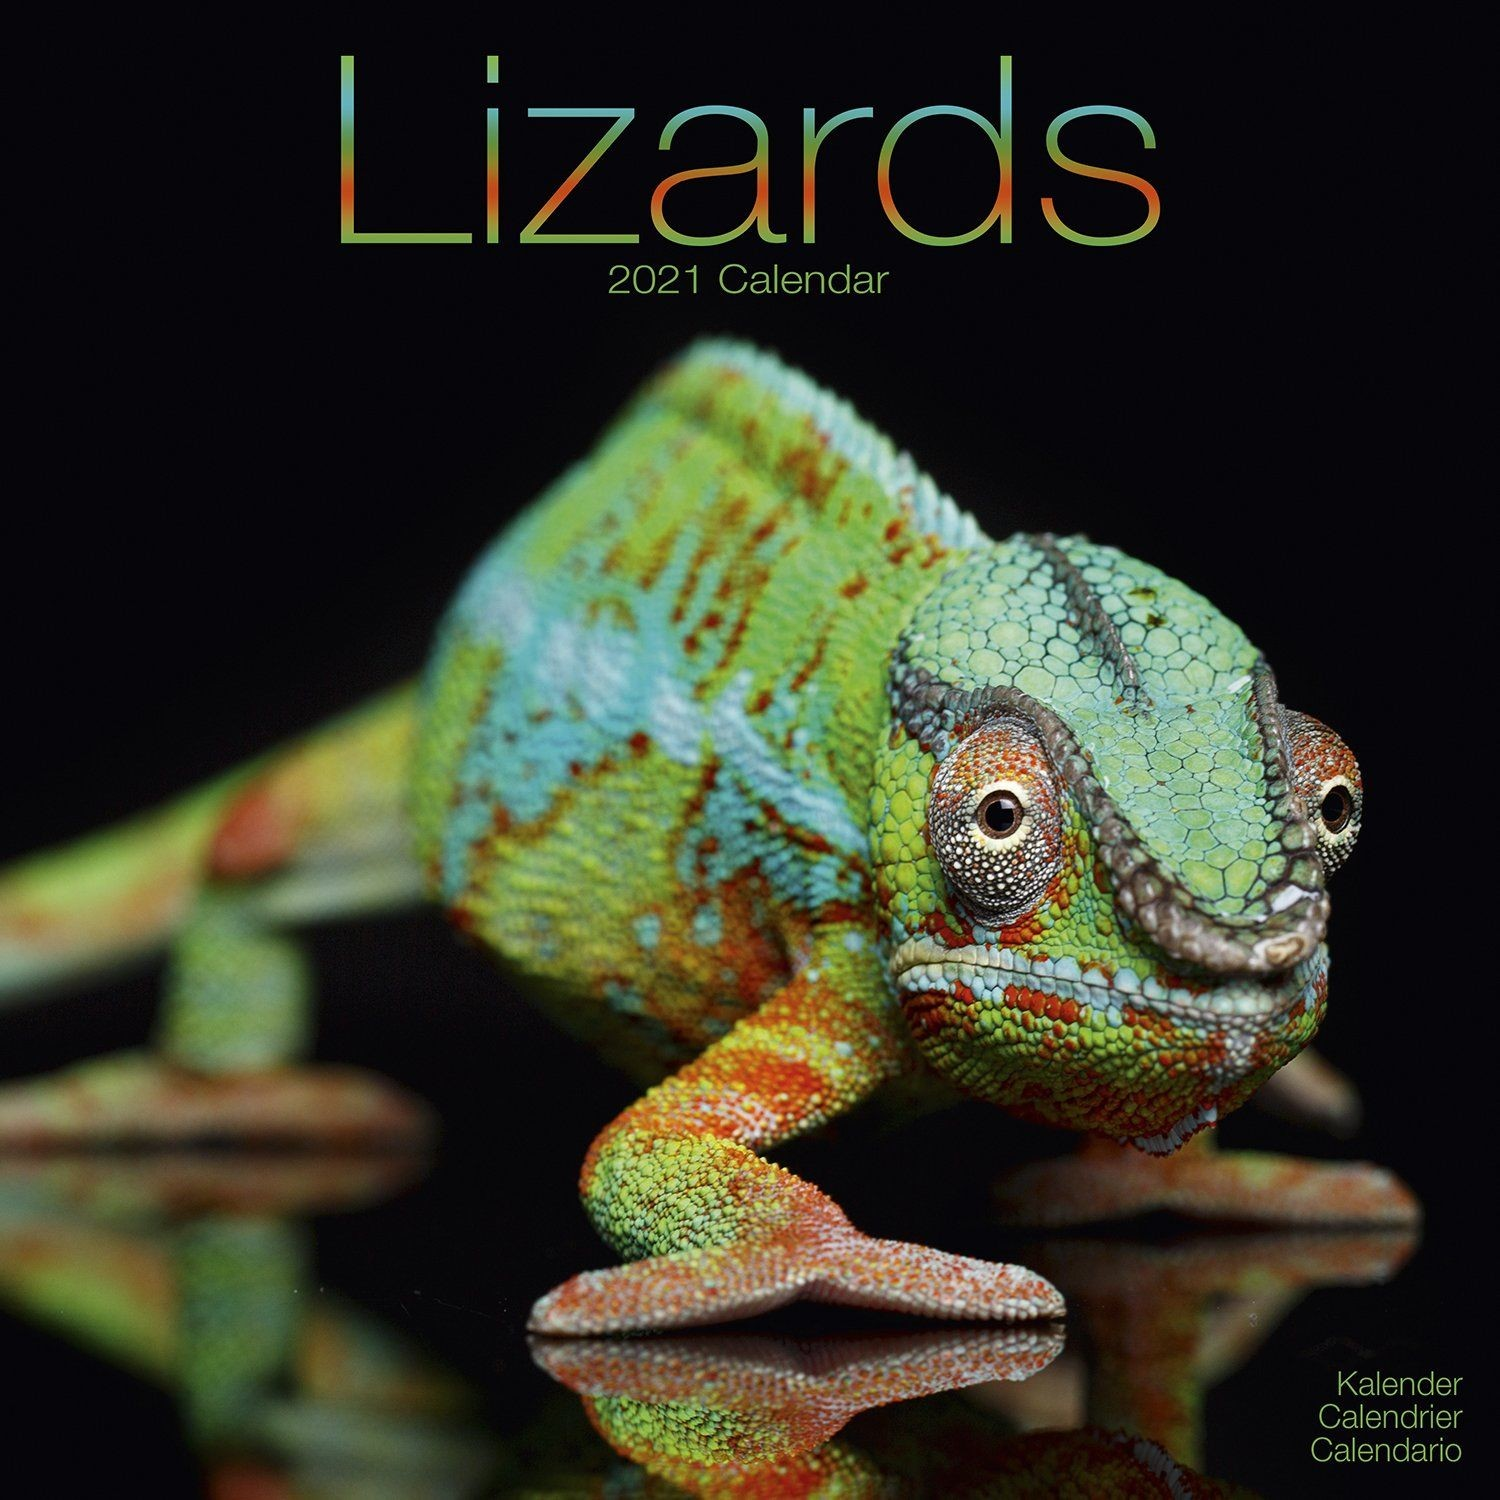 Lizards Wall Calendar 2021 by Avonside